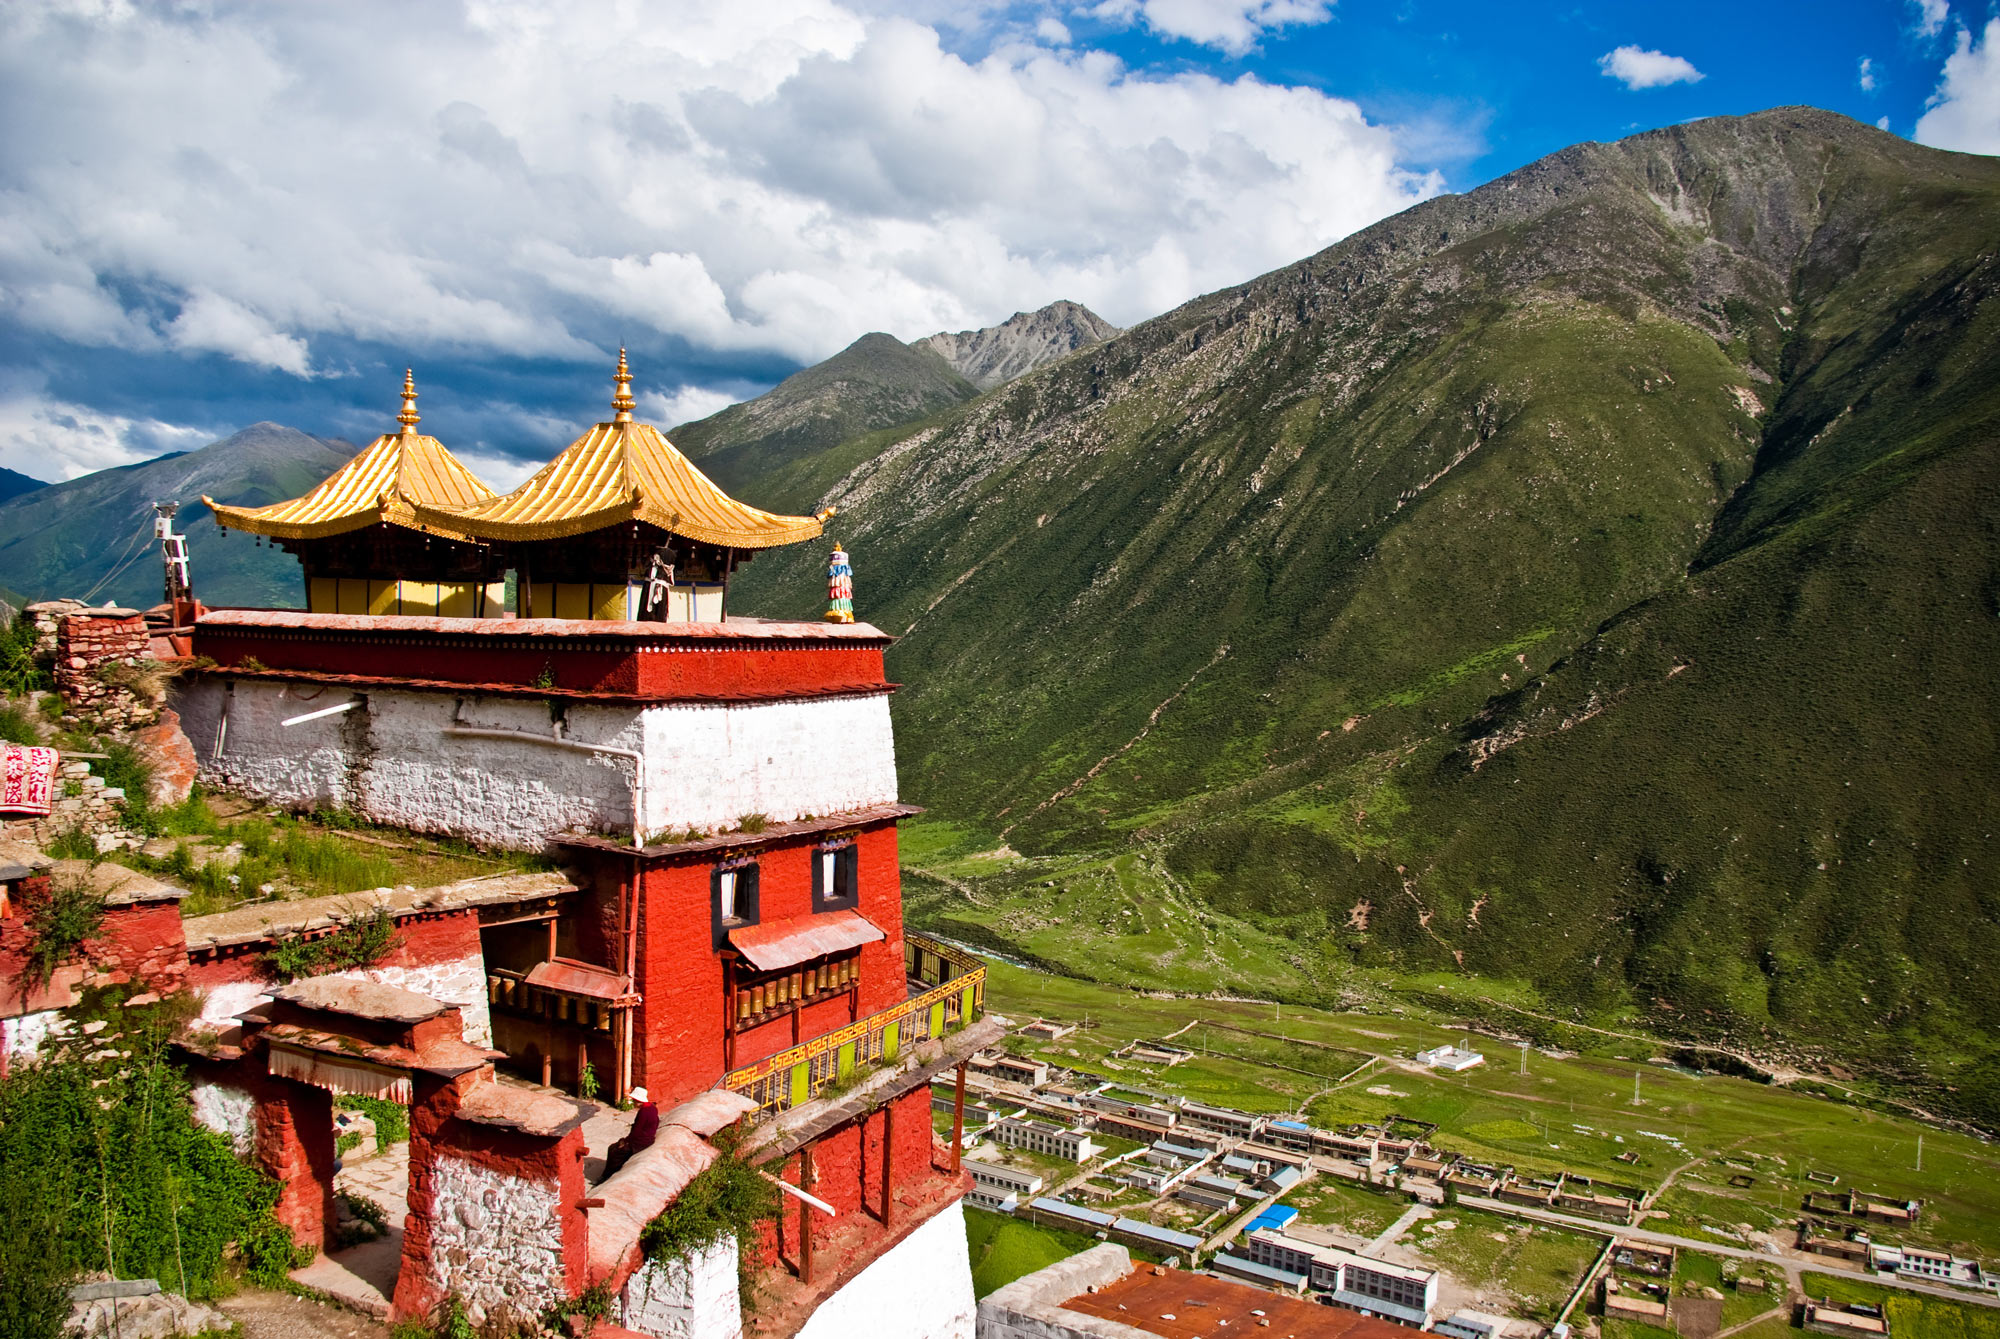 The Drigung Monastery is famous for performing sky burials. Photo by Antoine Taveneaux/Wikimedia.